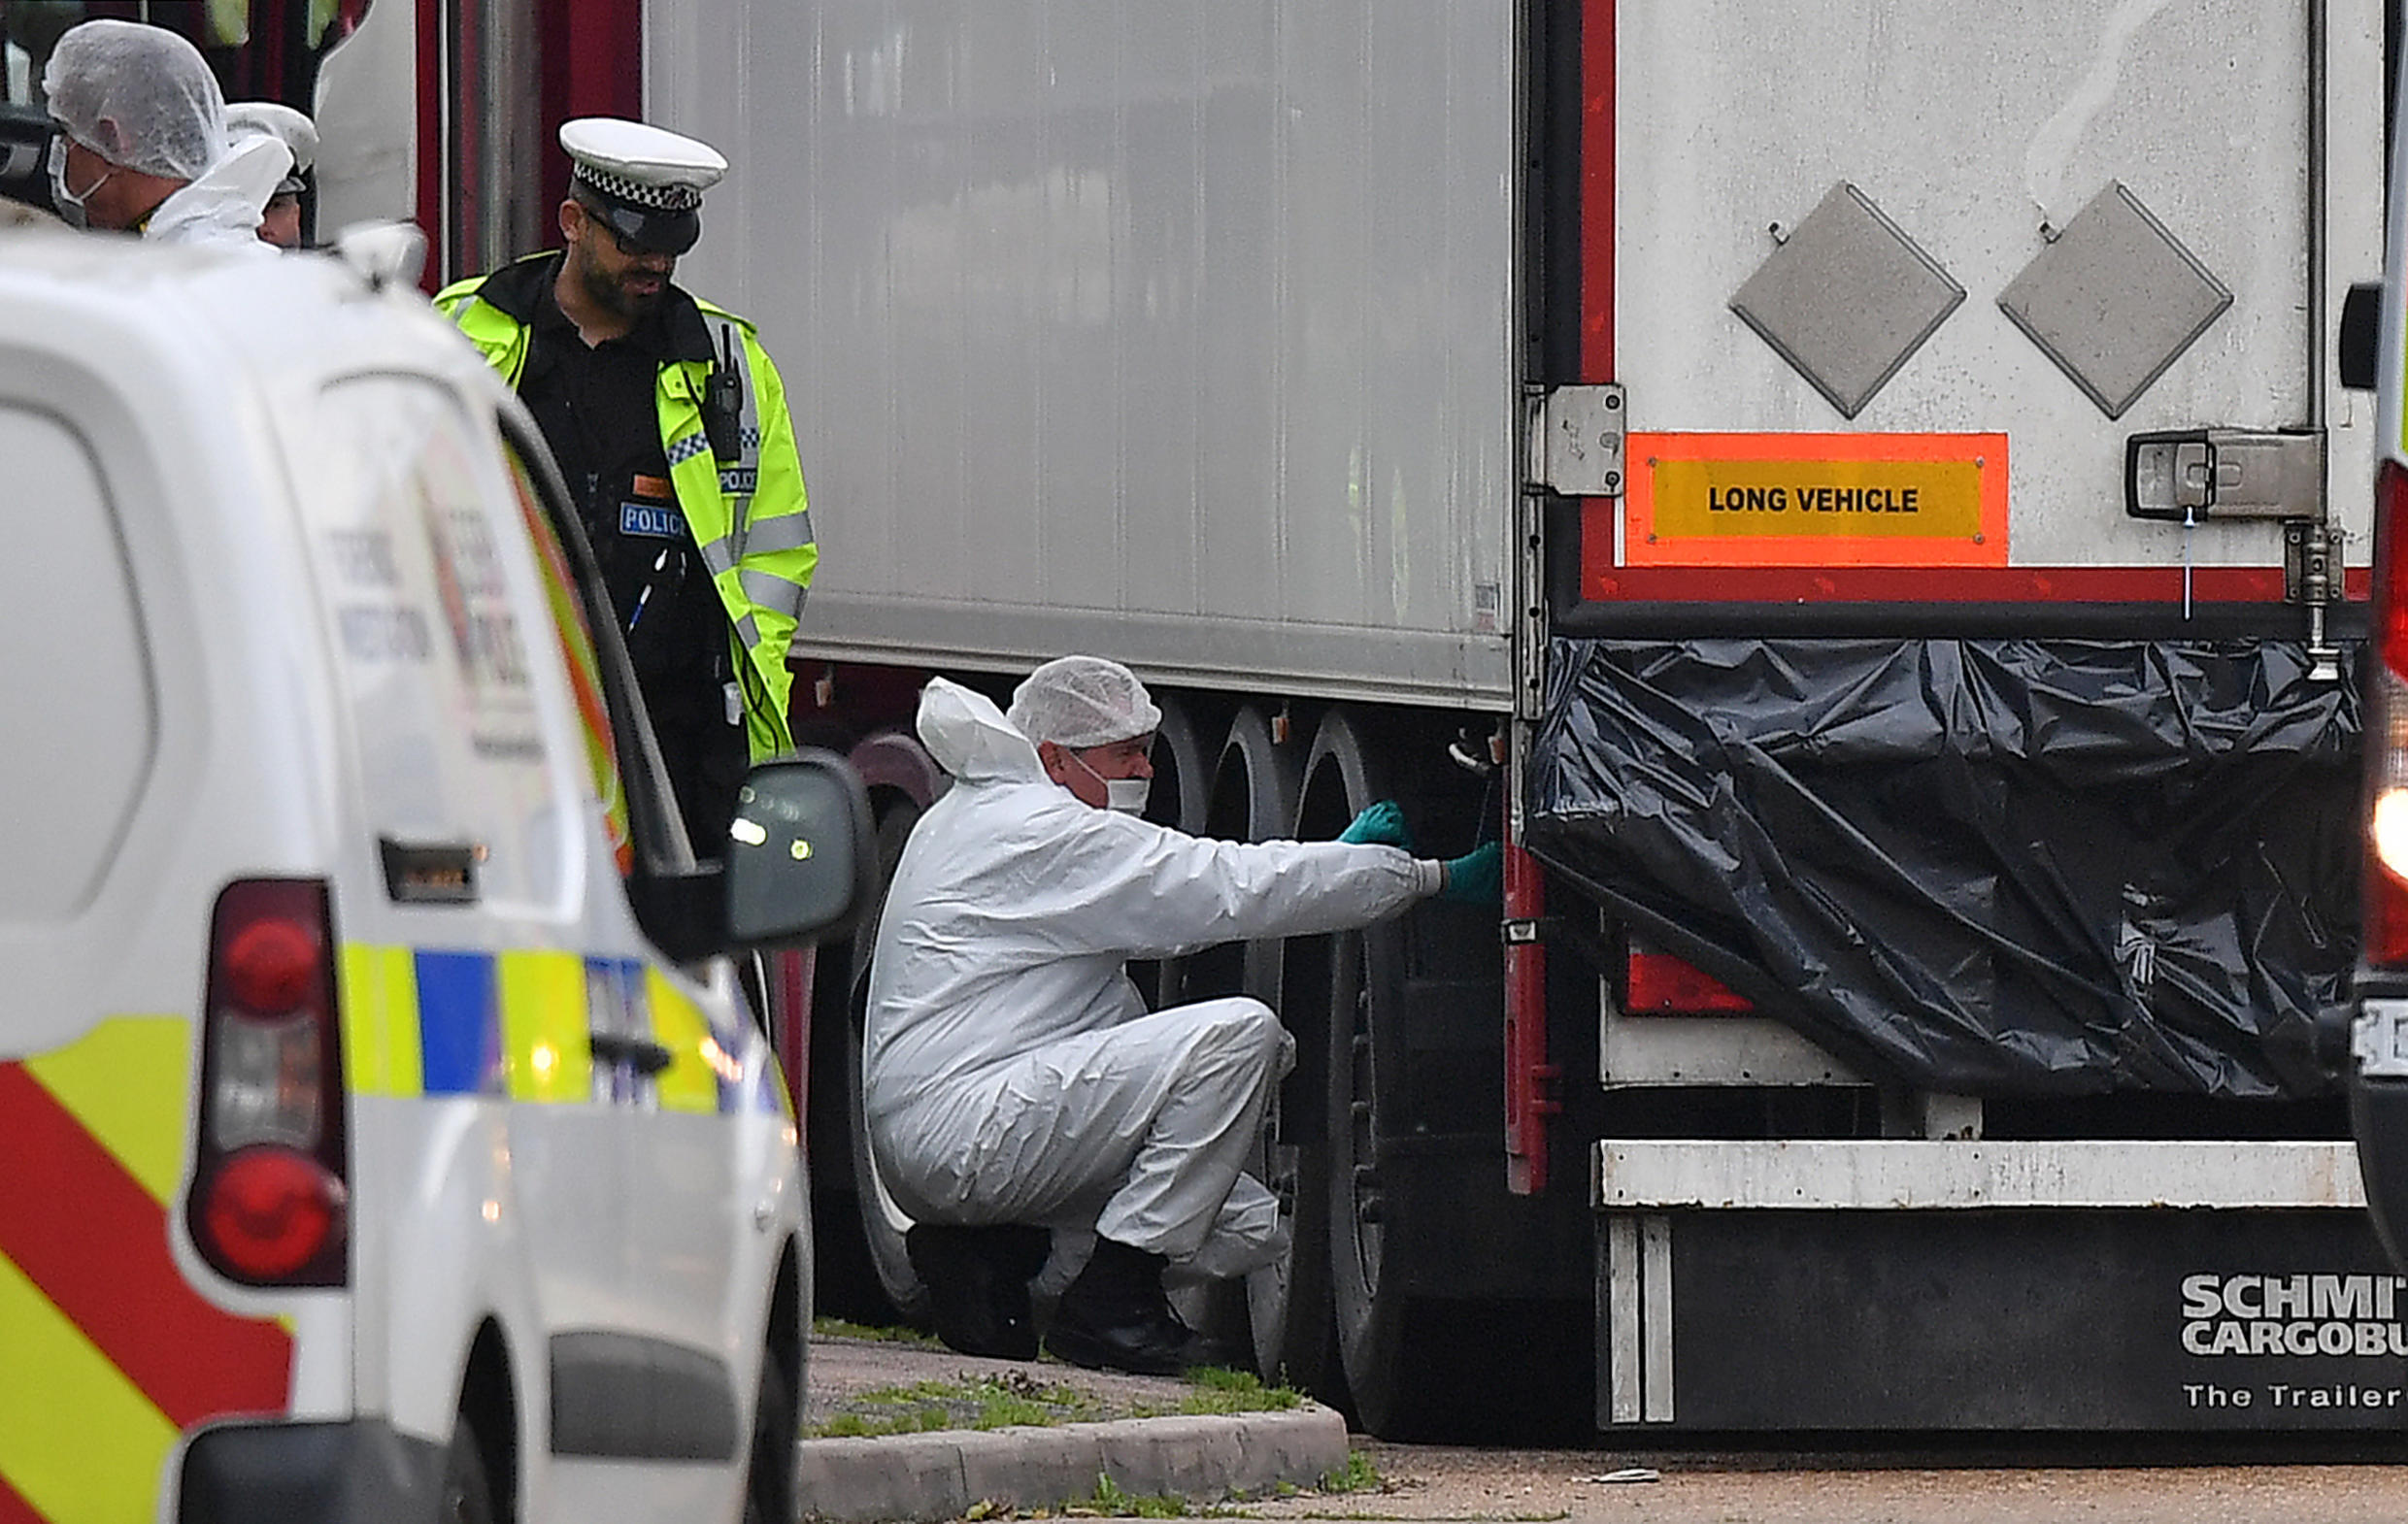 A total of eight people have been convicted in connection with the discovery of Vietnamese migrants in the back of a lorry in England